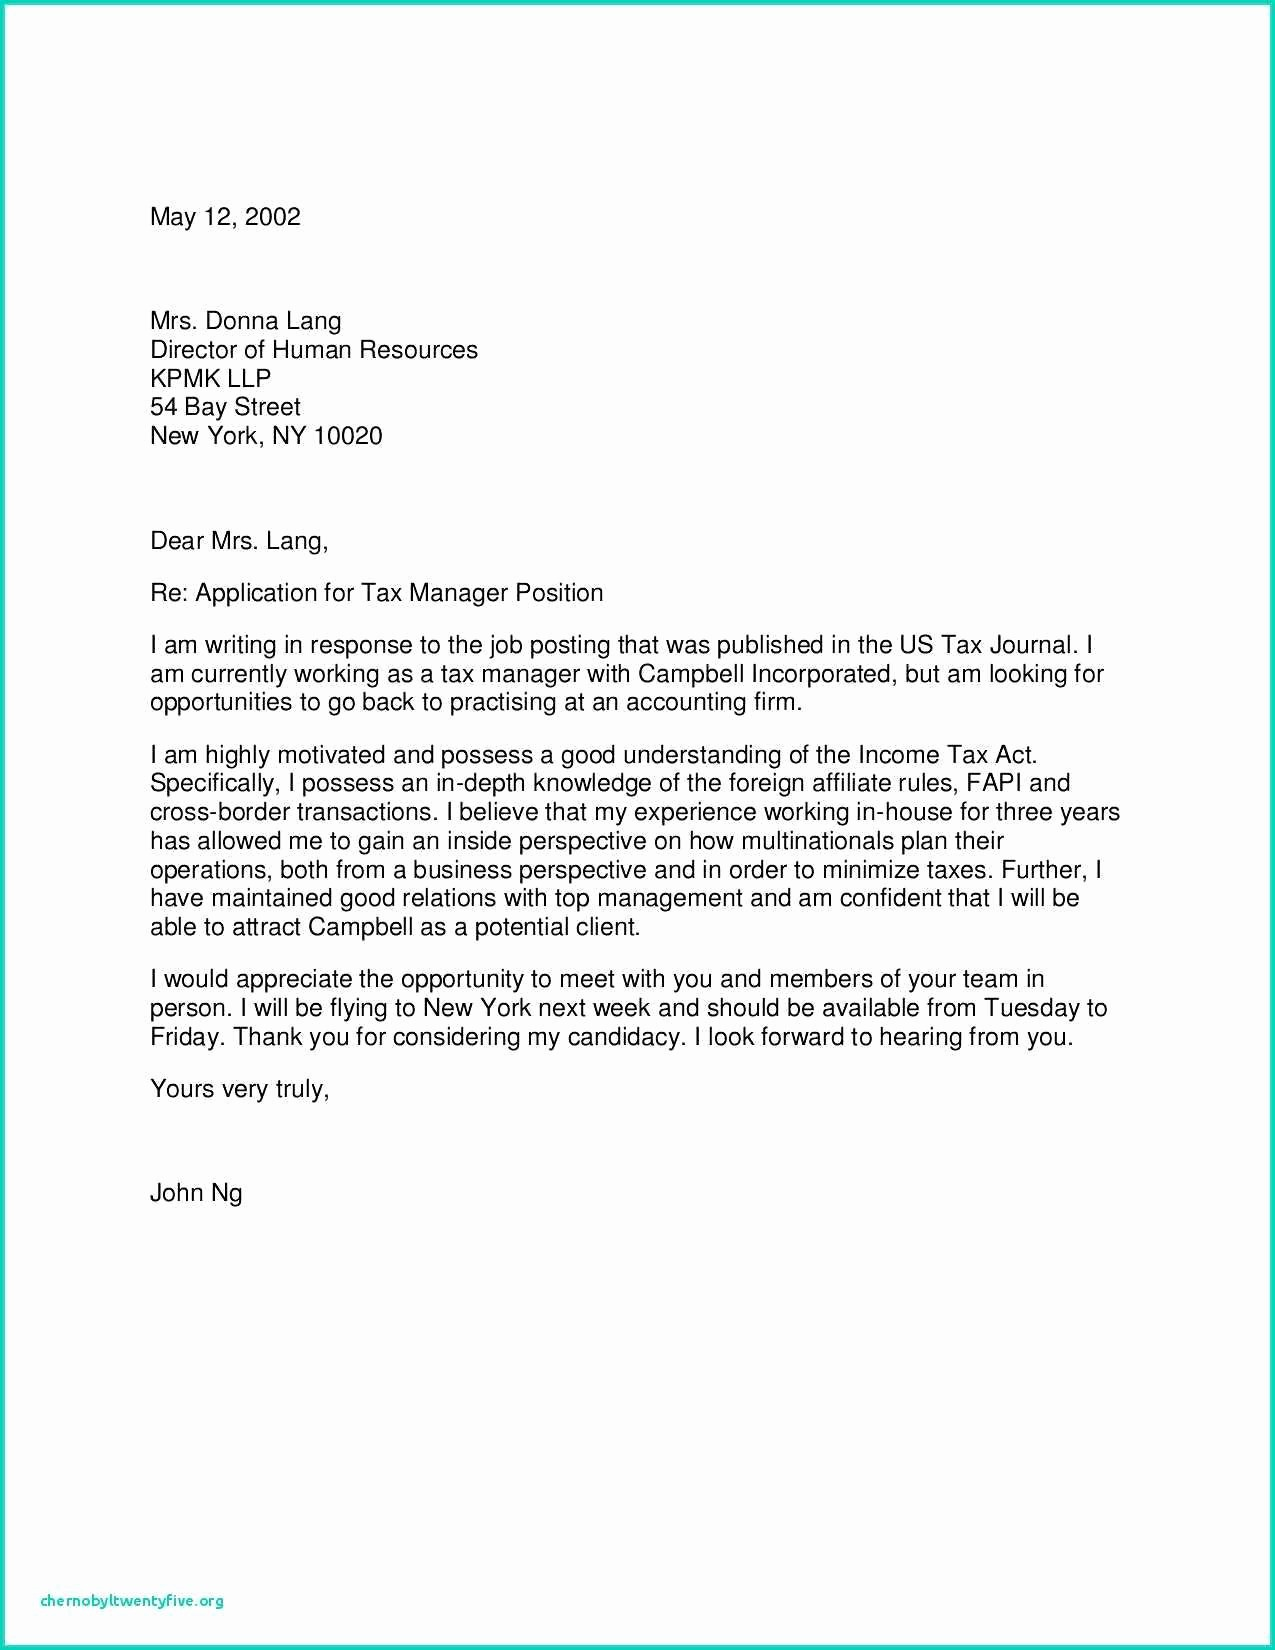 Eb1 Petition Letter Sample - Letter BestKitchenView CO